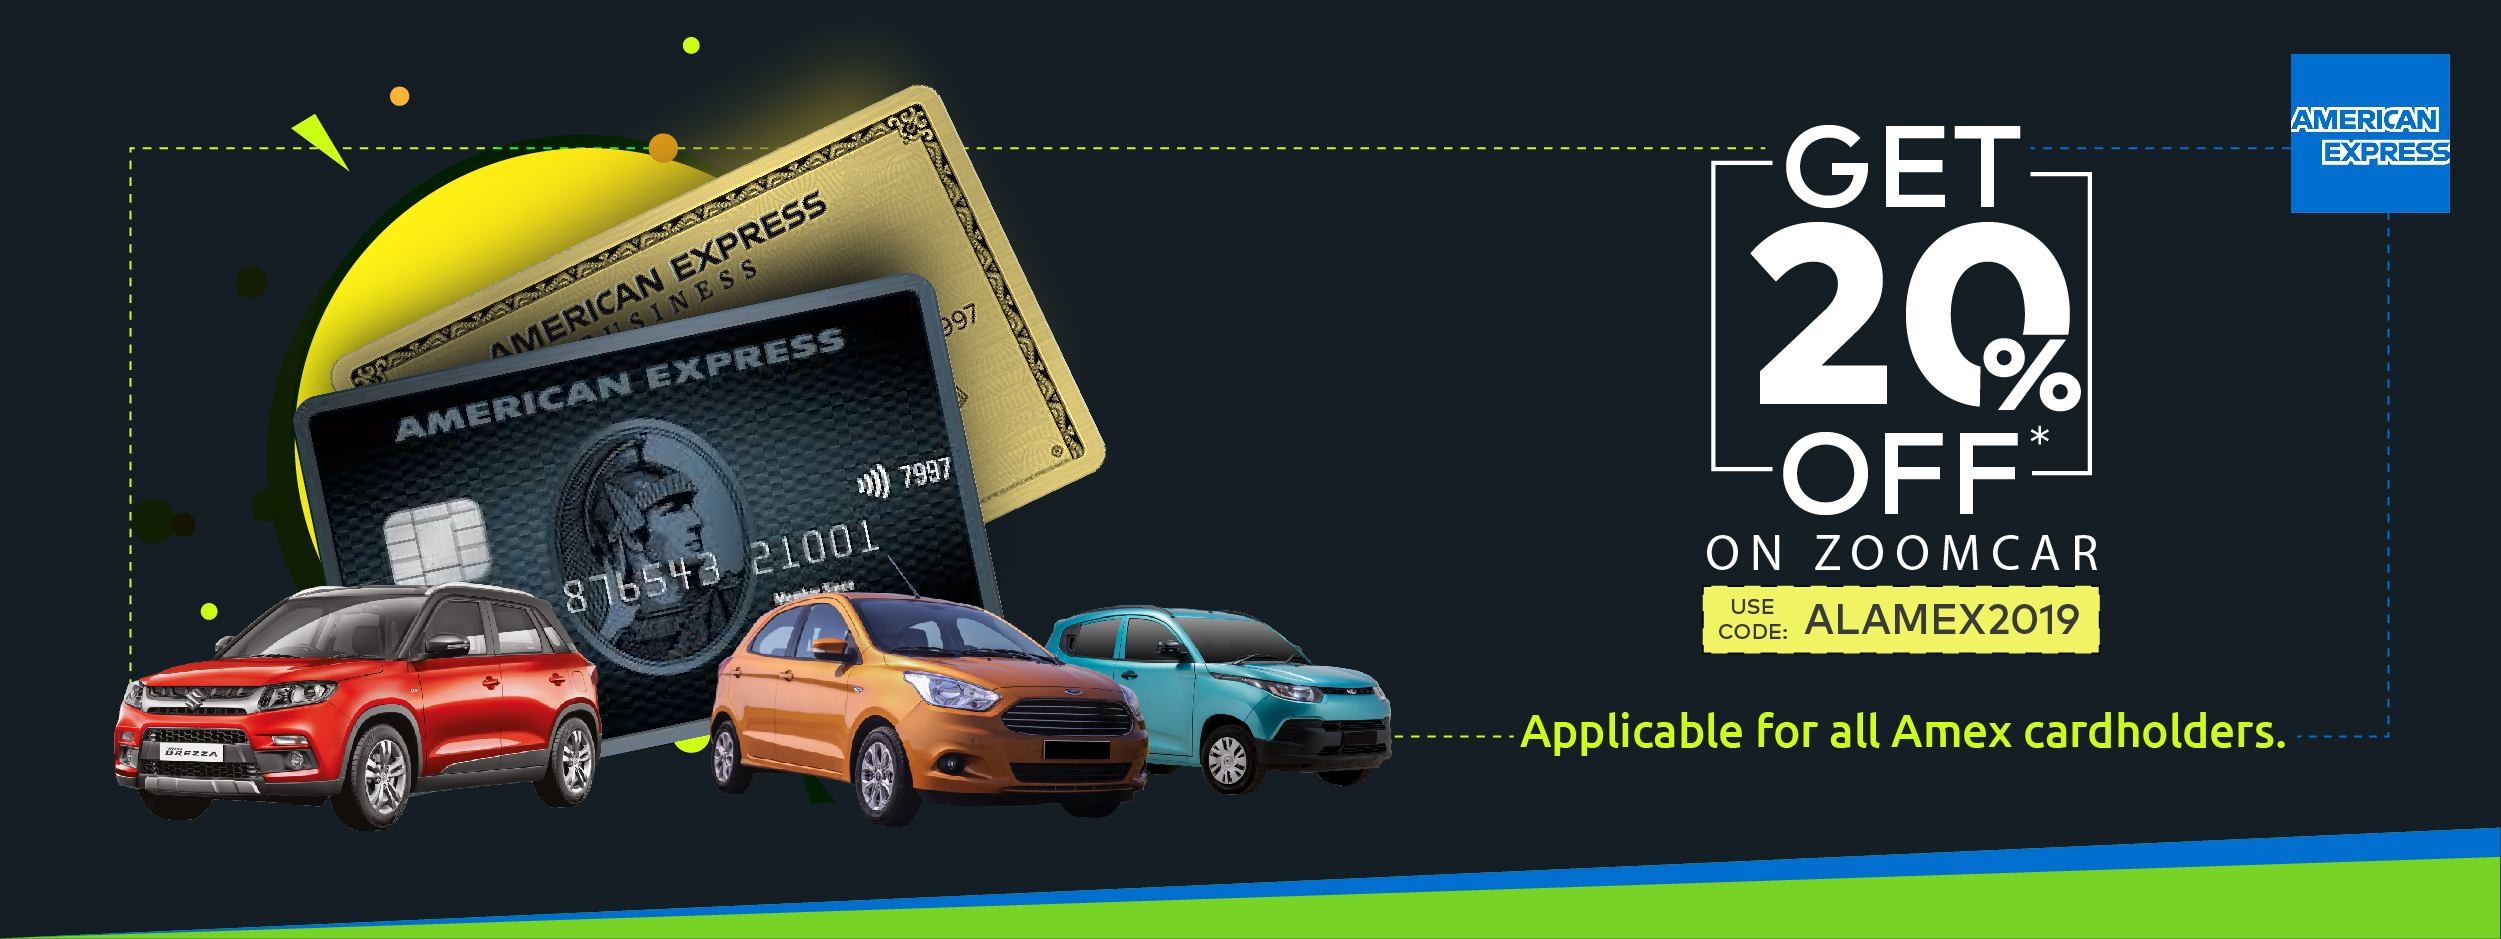 Zoomcar Coupons for Self Drive Cars, Coupon Codes for Car Rental